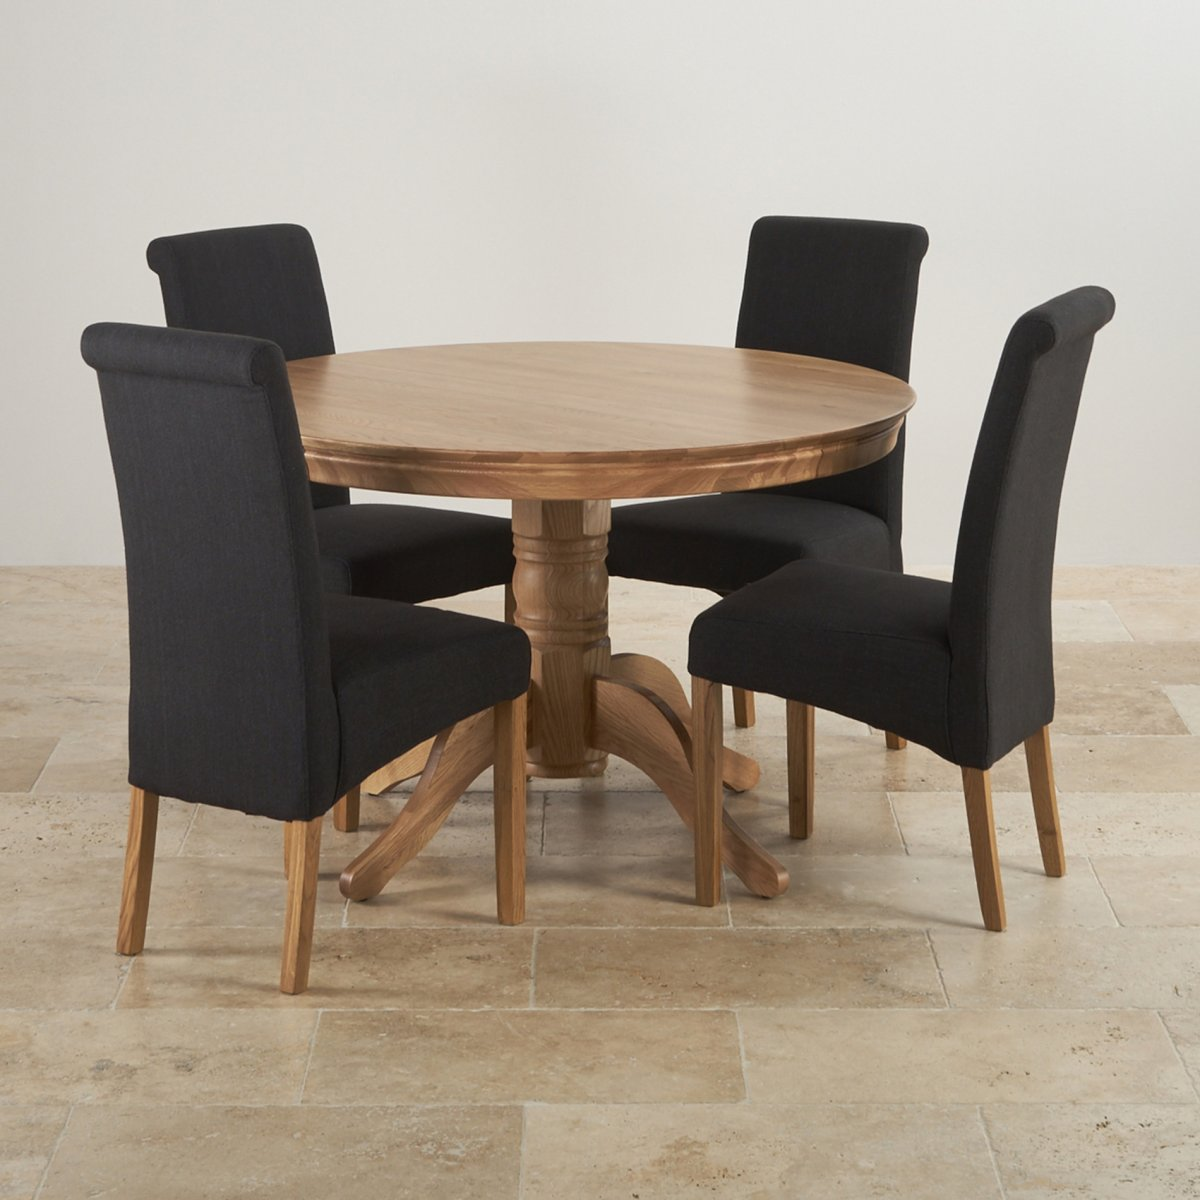 4ft Round Dining Table In Natural Oak + 4 Black Fabric Chairs